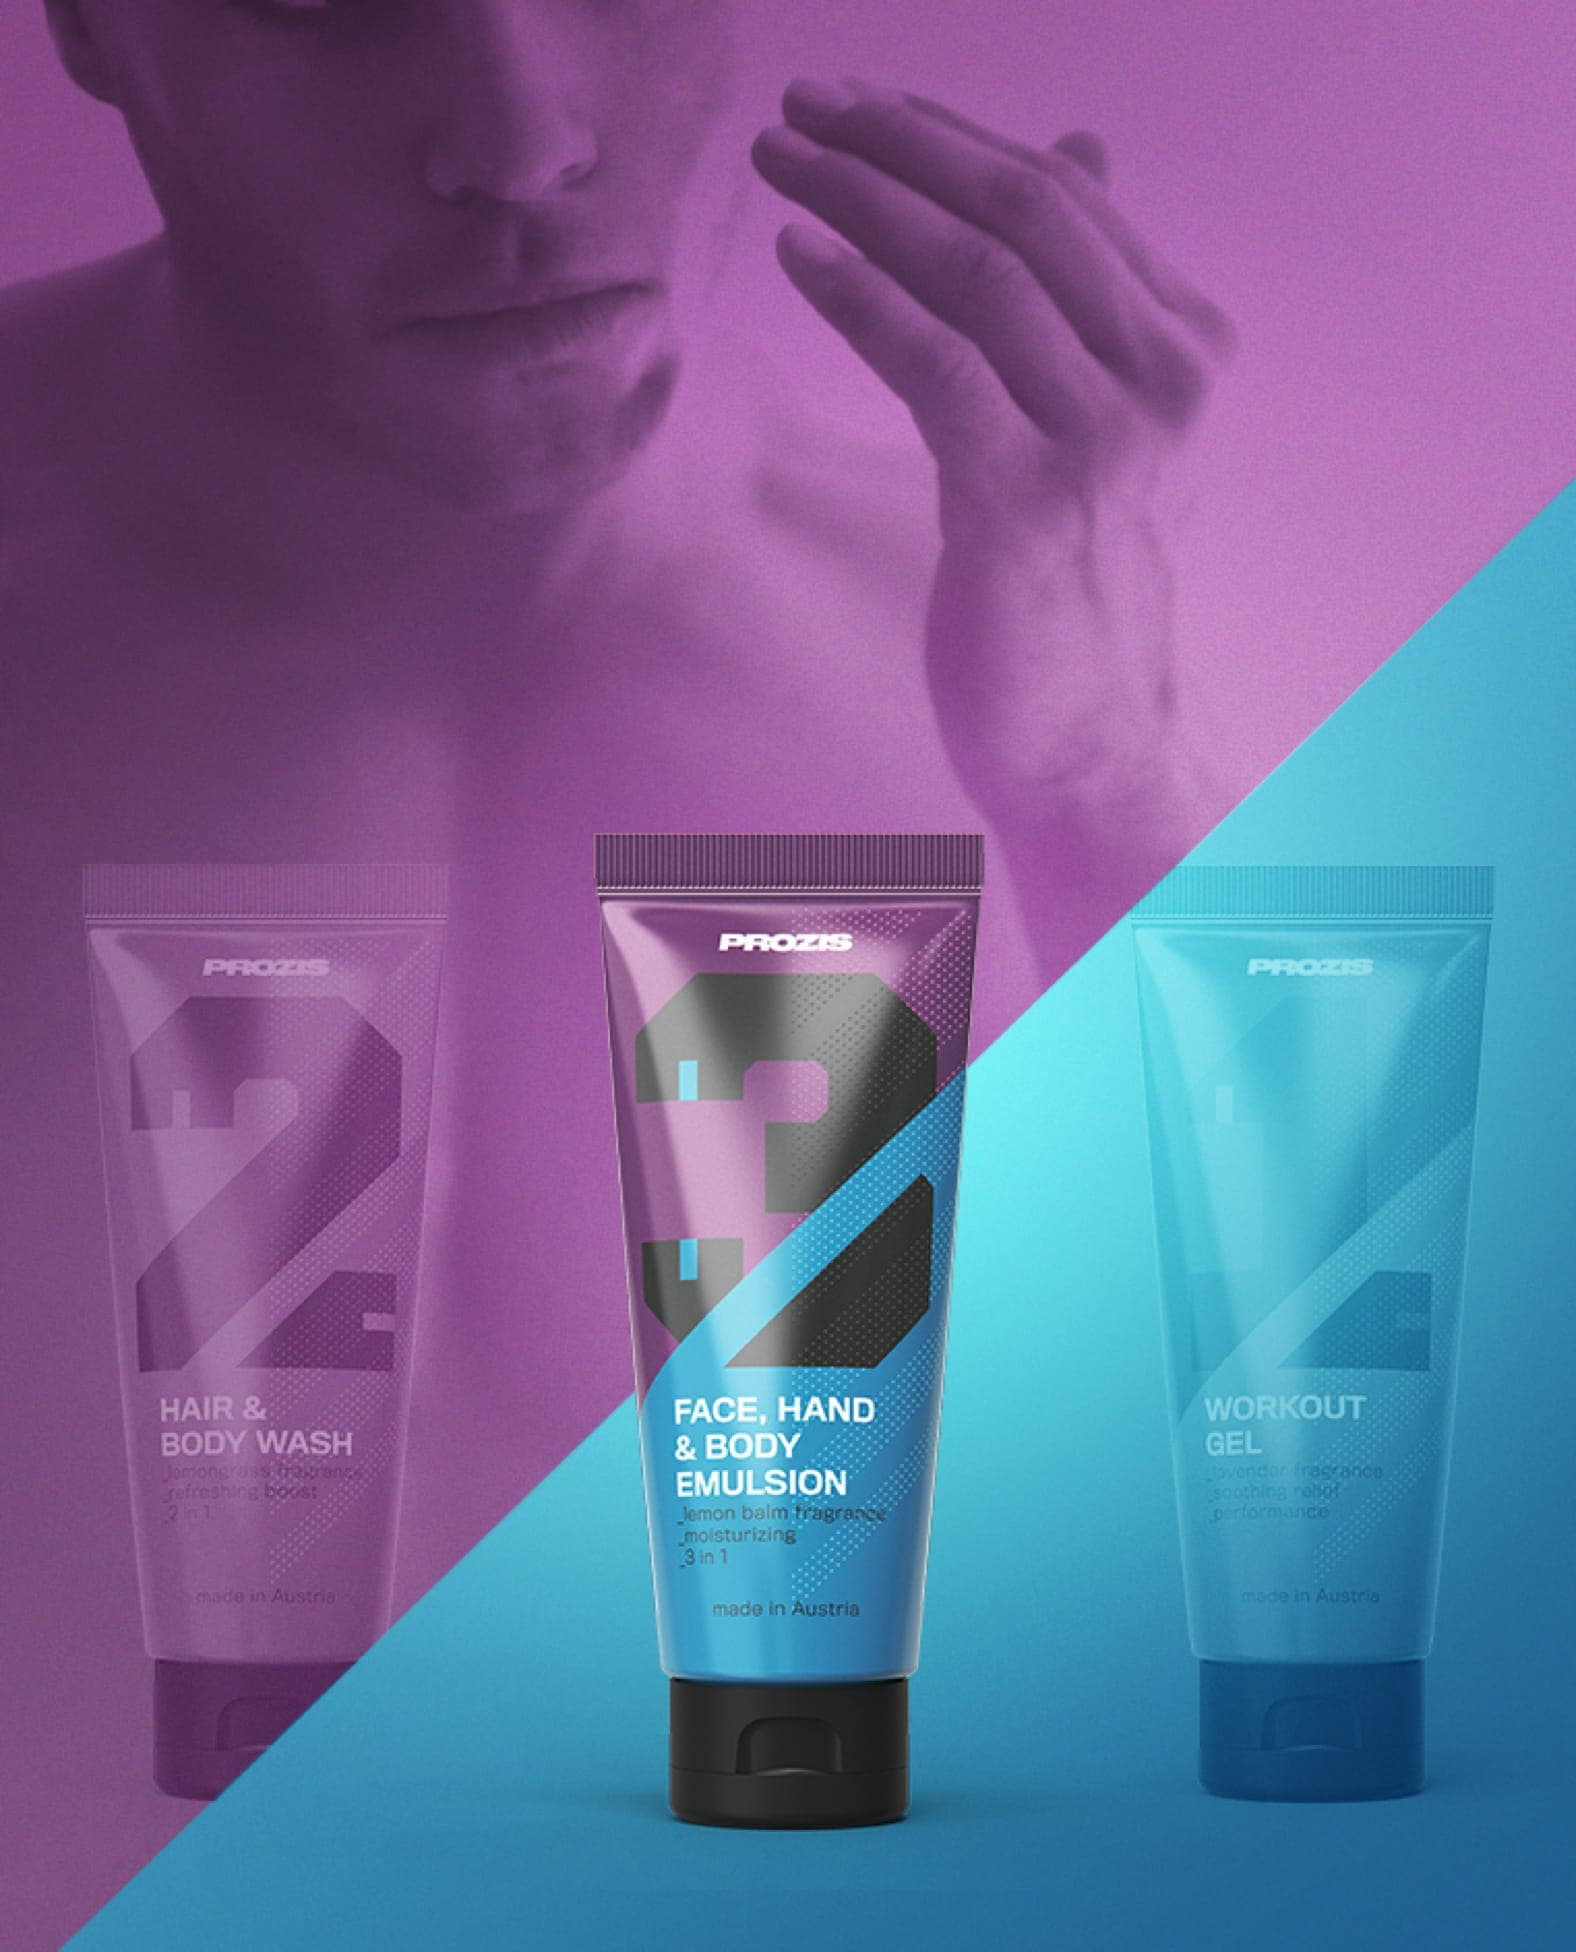 Face Hand & Body Emulsion